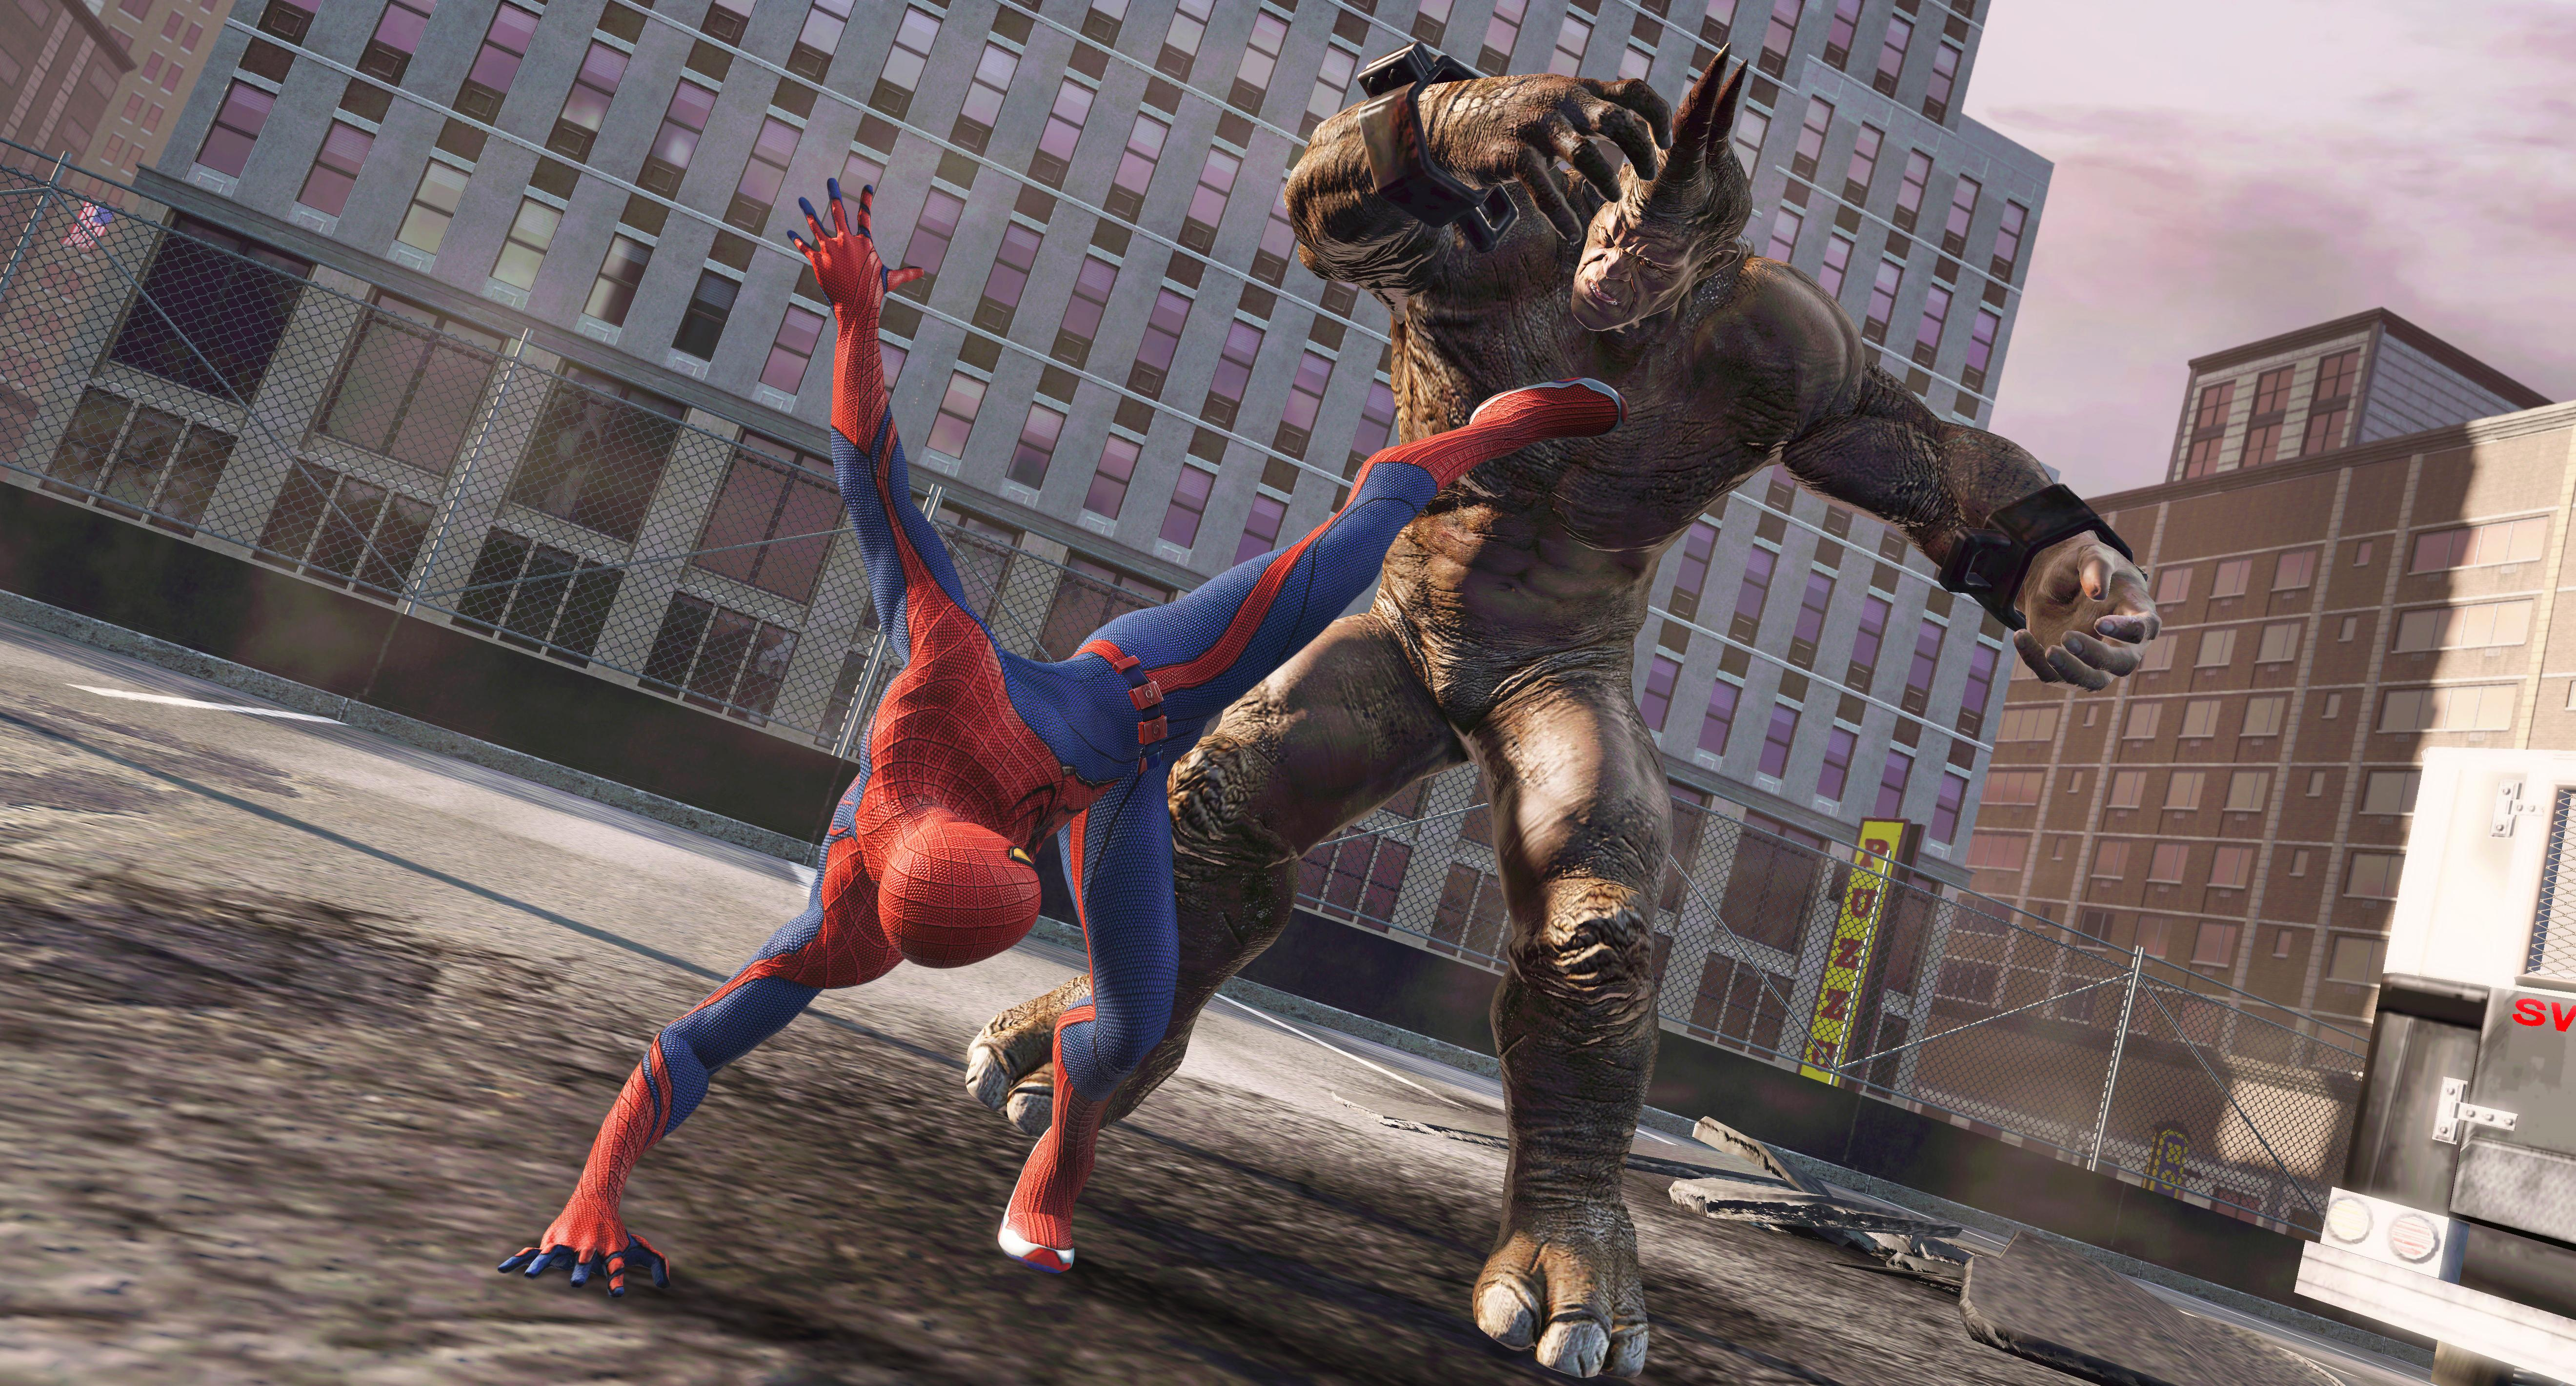 ASM Spidey Keeps Rhino at Bay The Amazing Spider Man: Xbox 360 Review